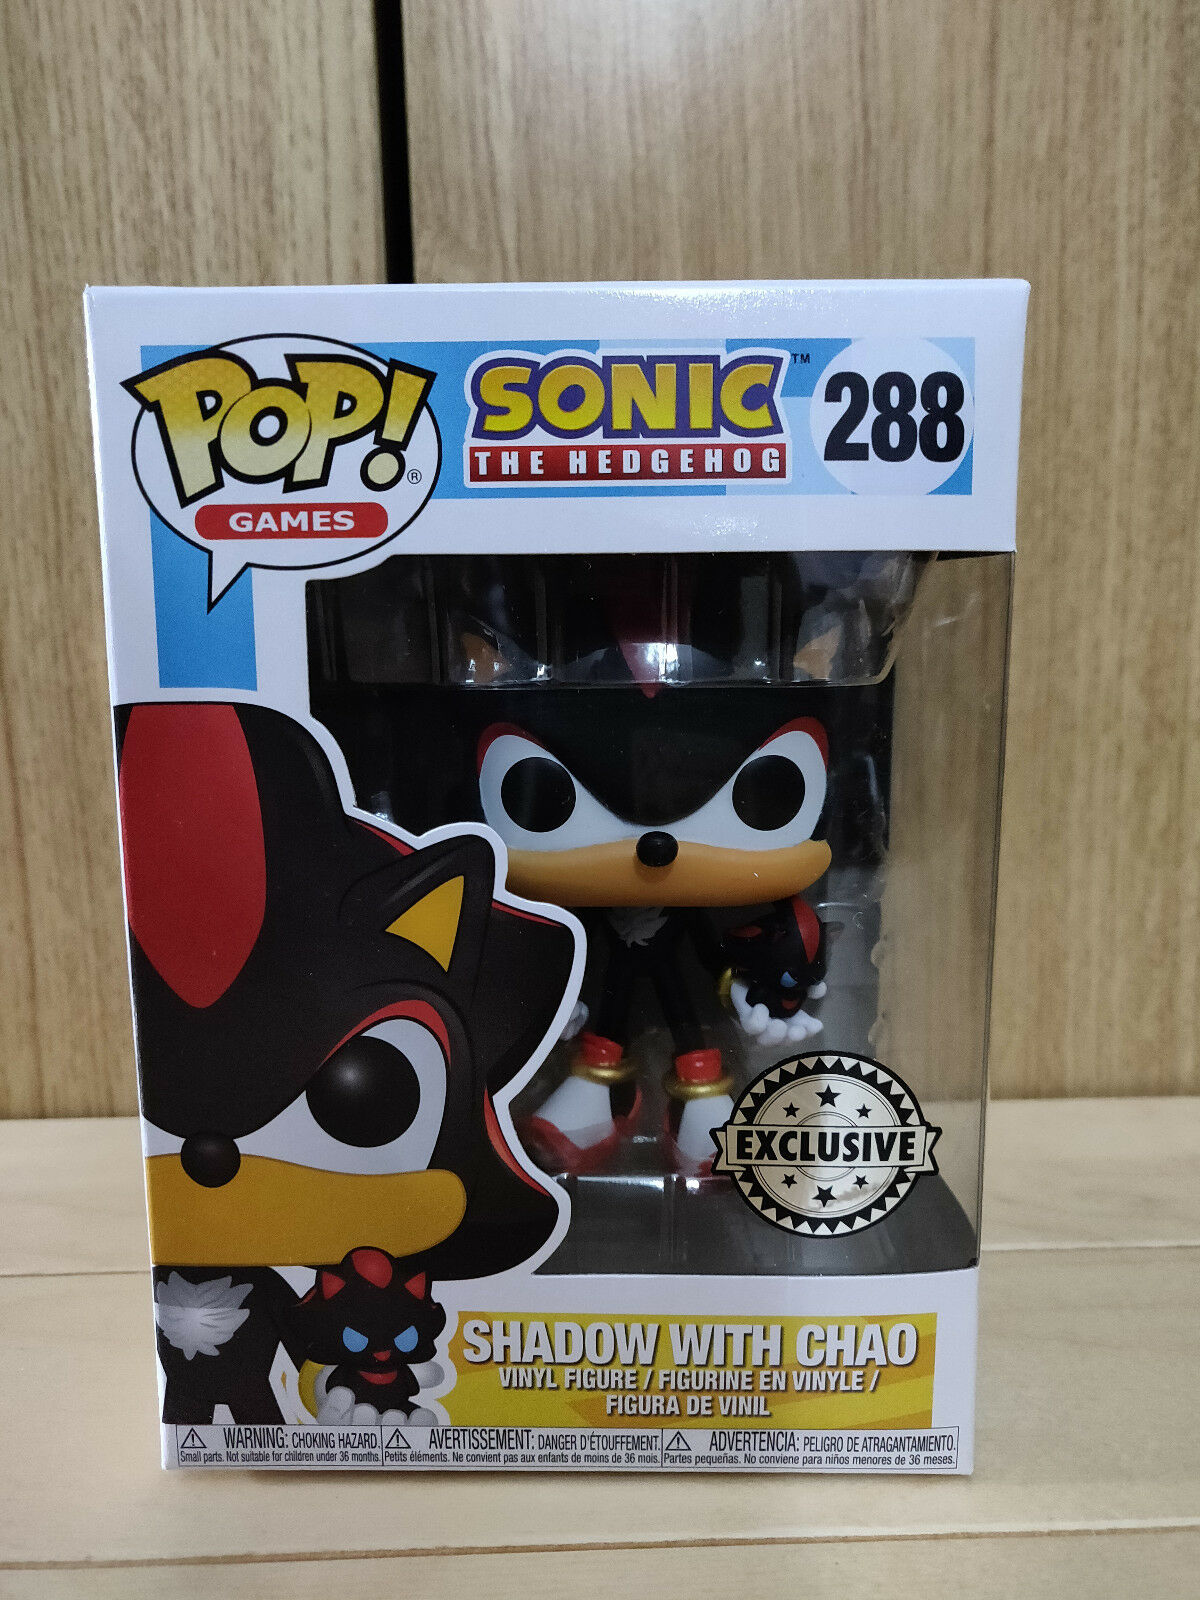 FUNKO POP SONIC THE HEDGEHOG SHADOW WITH CHAO  288 EXCLUSIVE